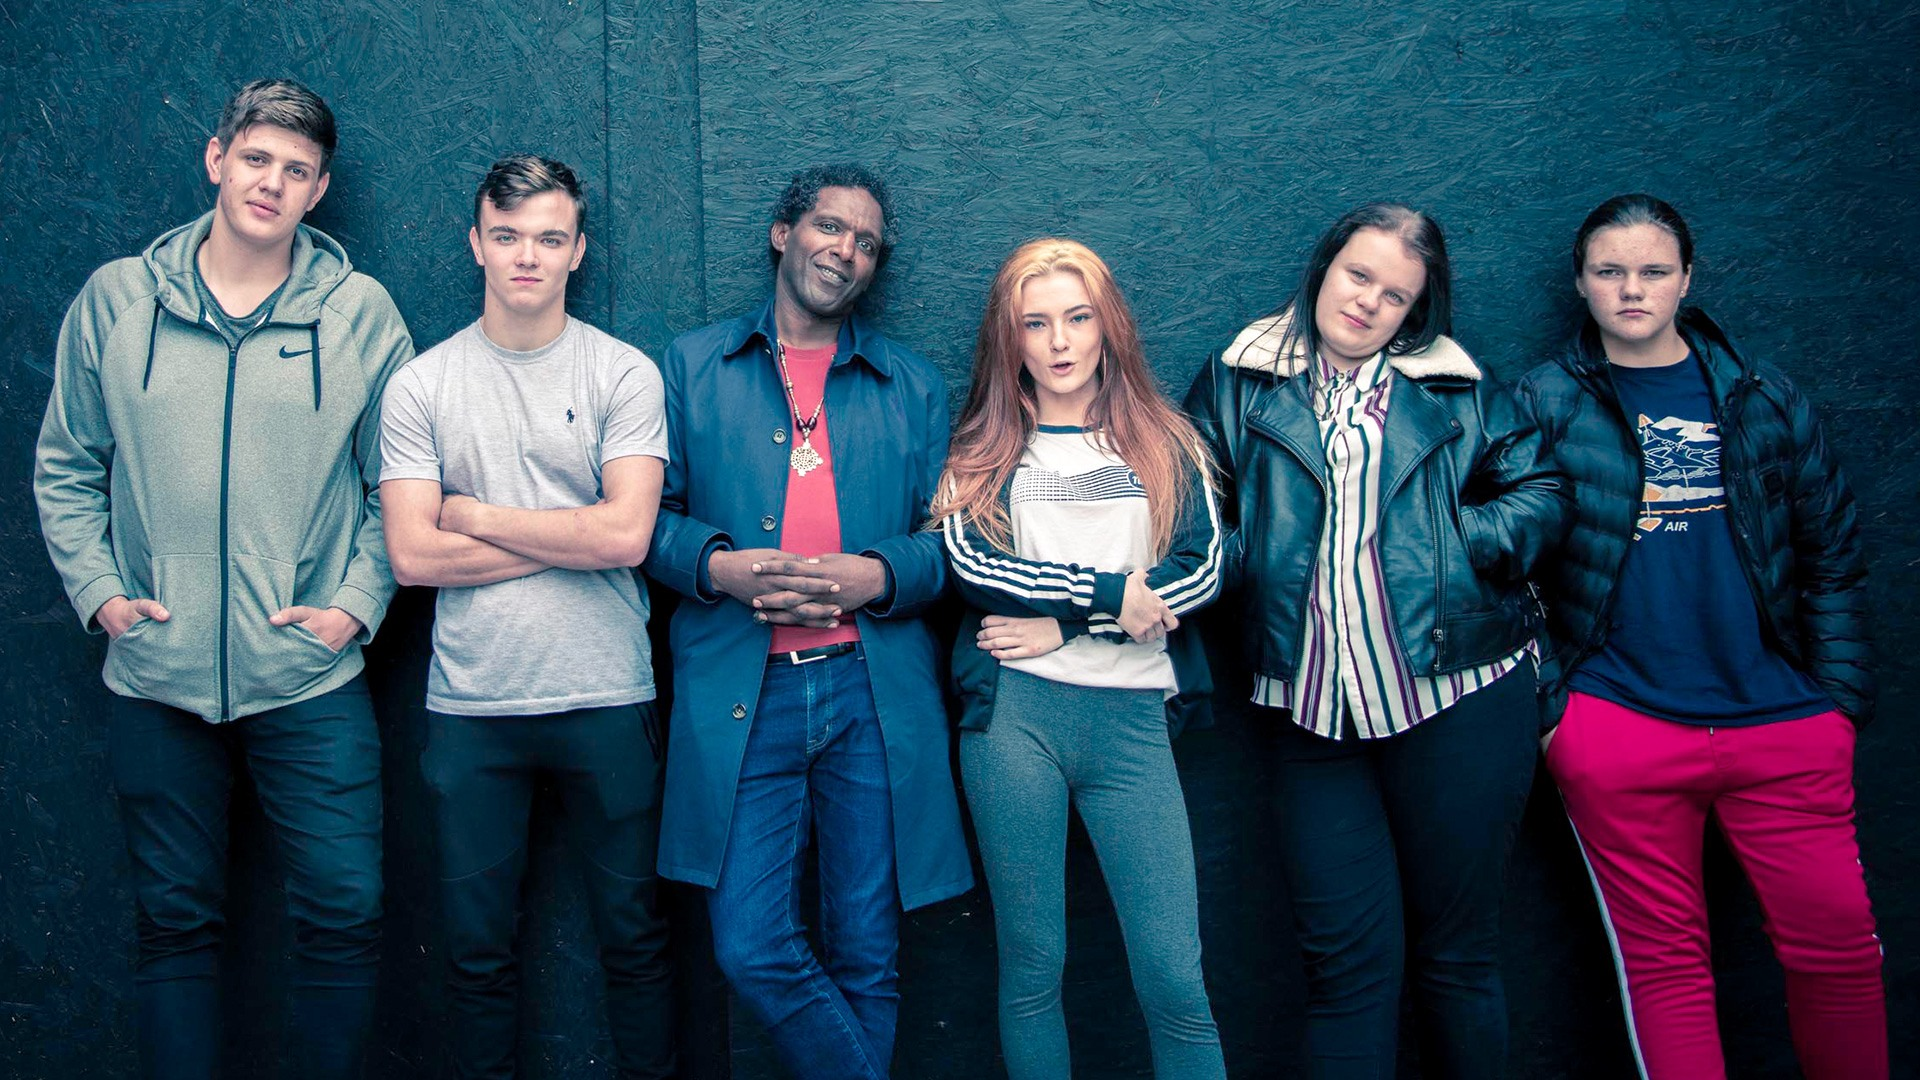 Additionally - Abdul was the Associate Director of the Channel 4 Documentary, 'Superkids' about young people in care, led by Lemn Sissay.Watch here now